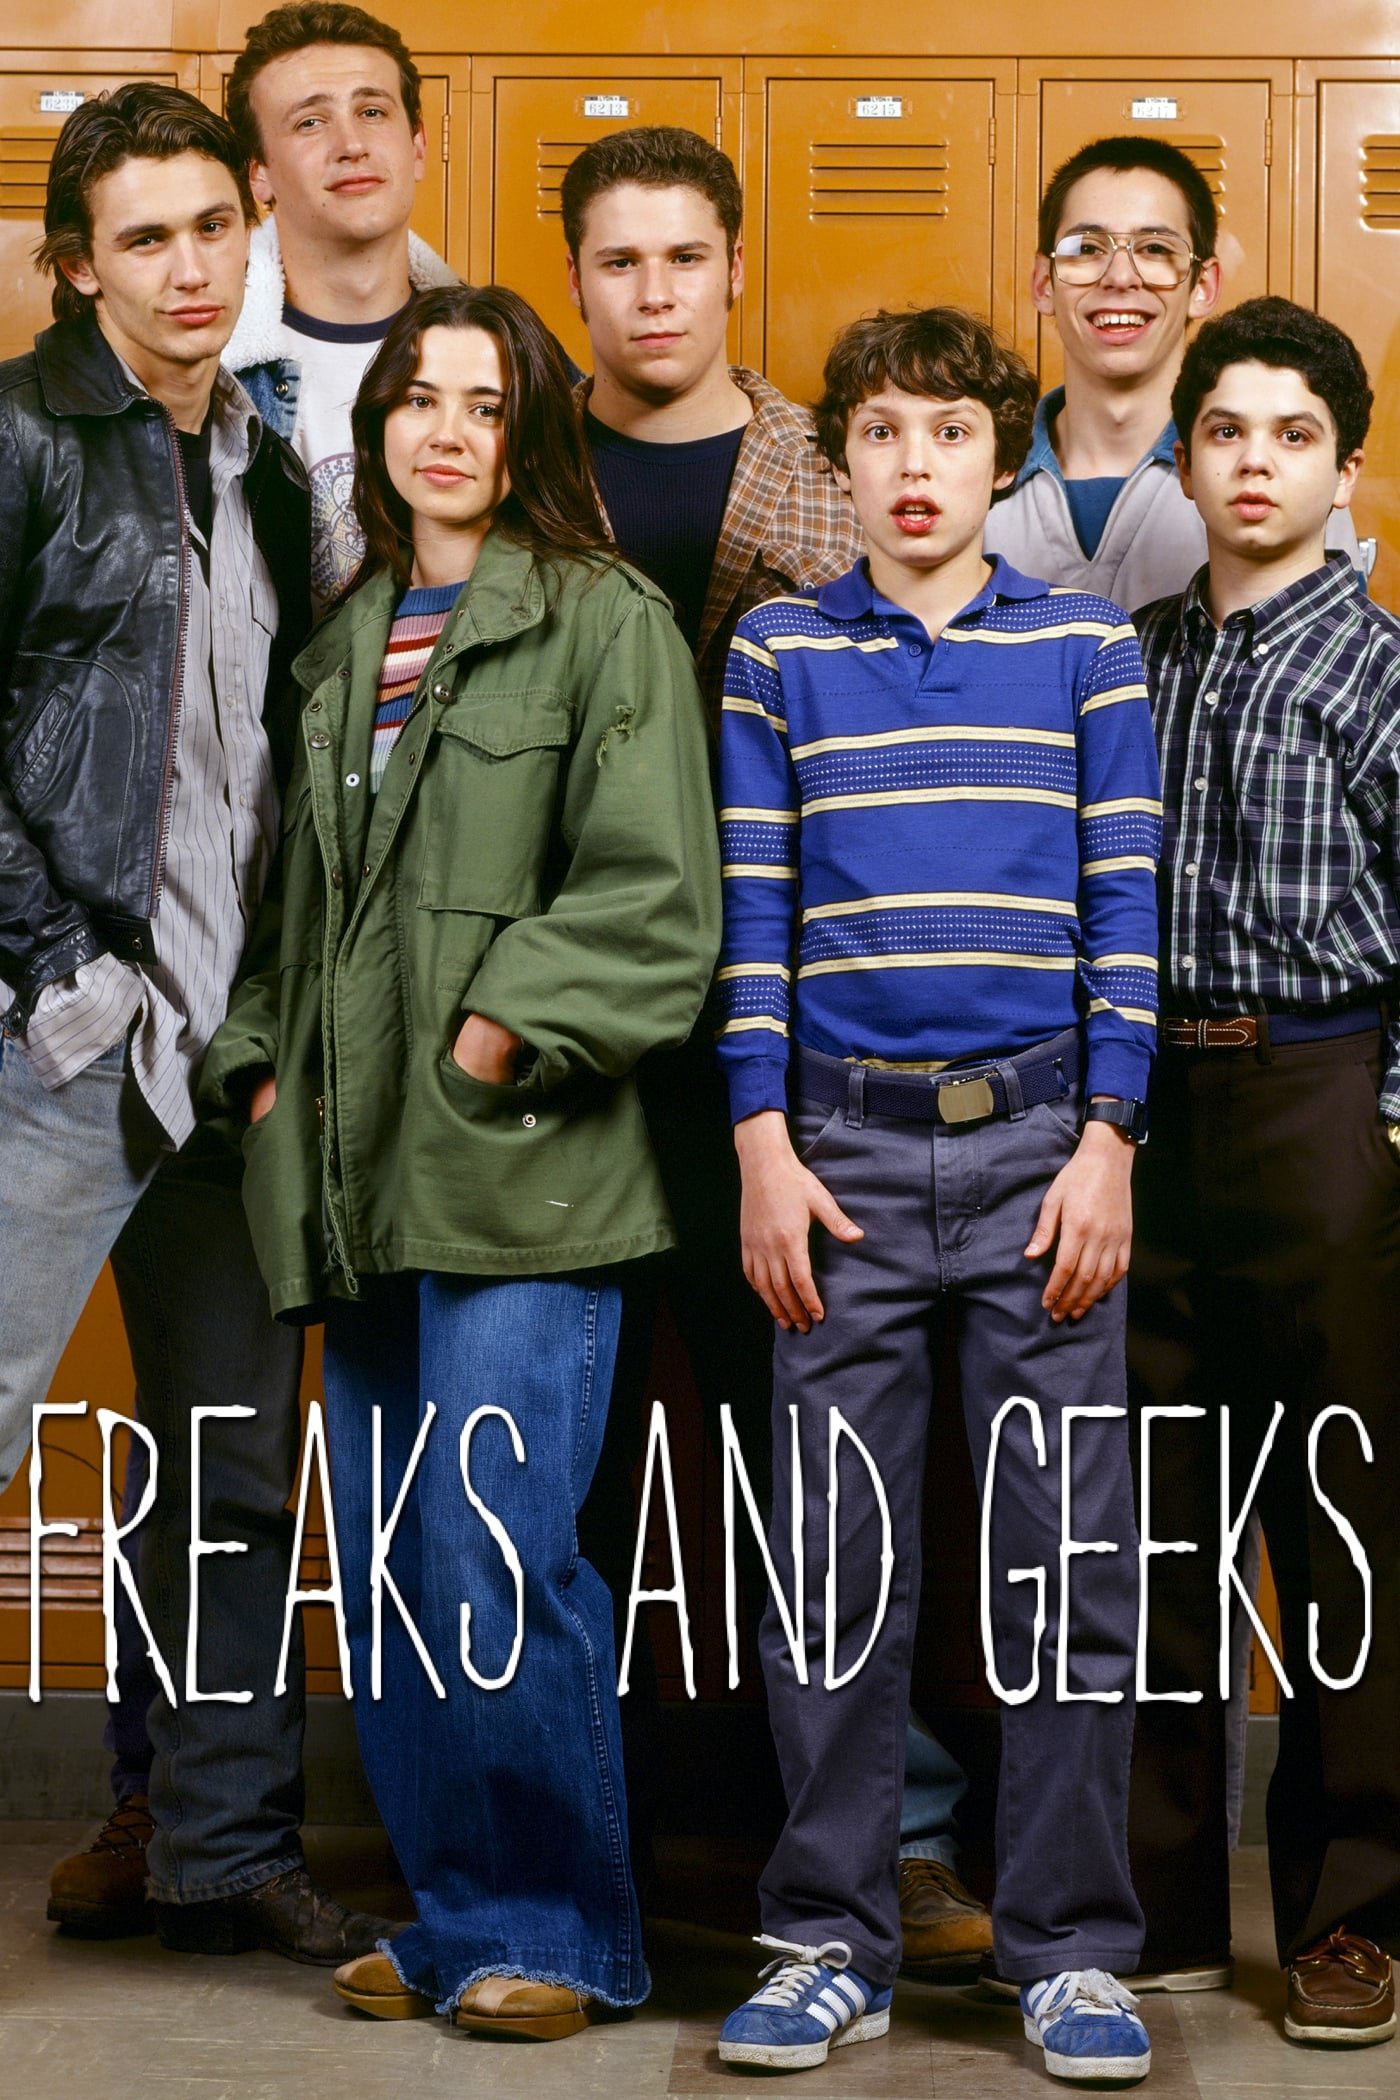 Freaks and Geeks' />